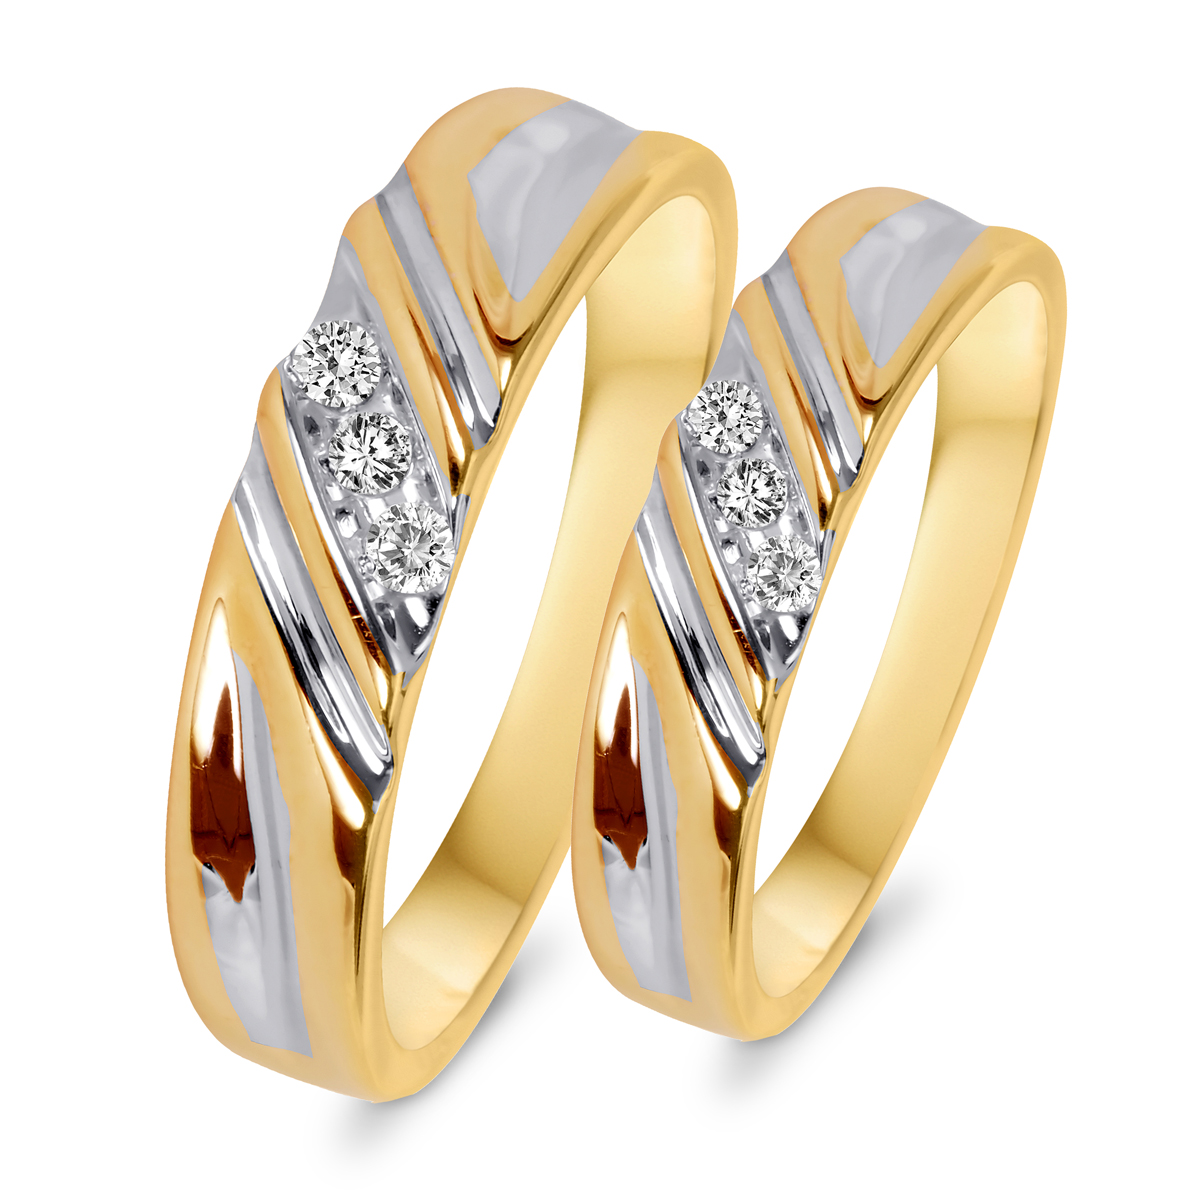 Gold Wedding Rings.1 10 Ct T W Diamond His And Hers Wedding Rings 14k Yellow Gold